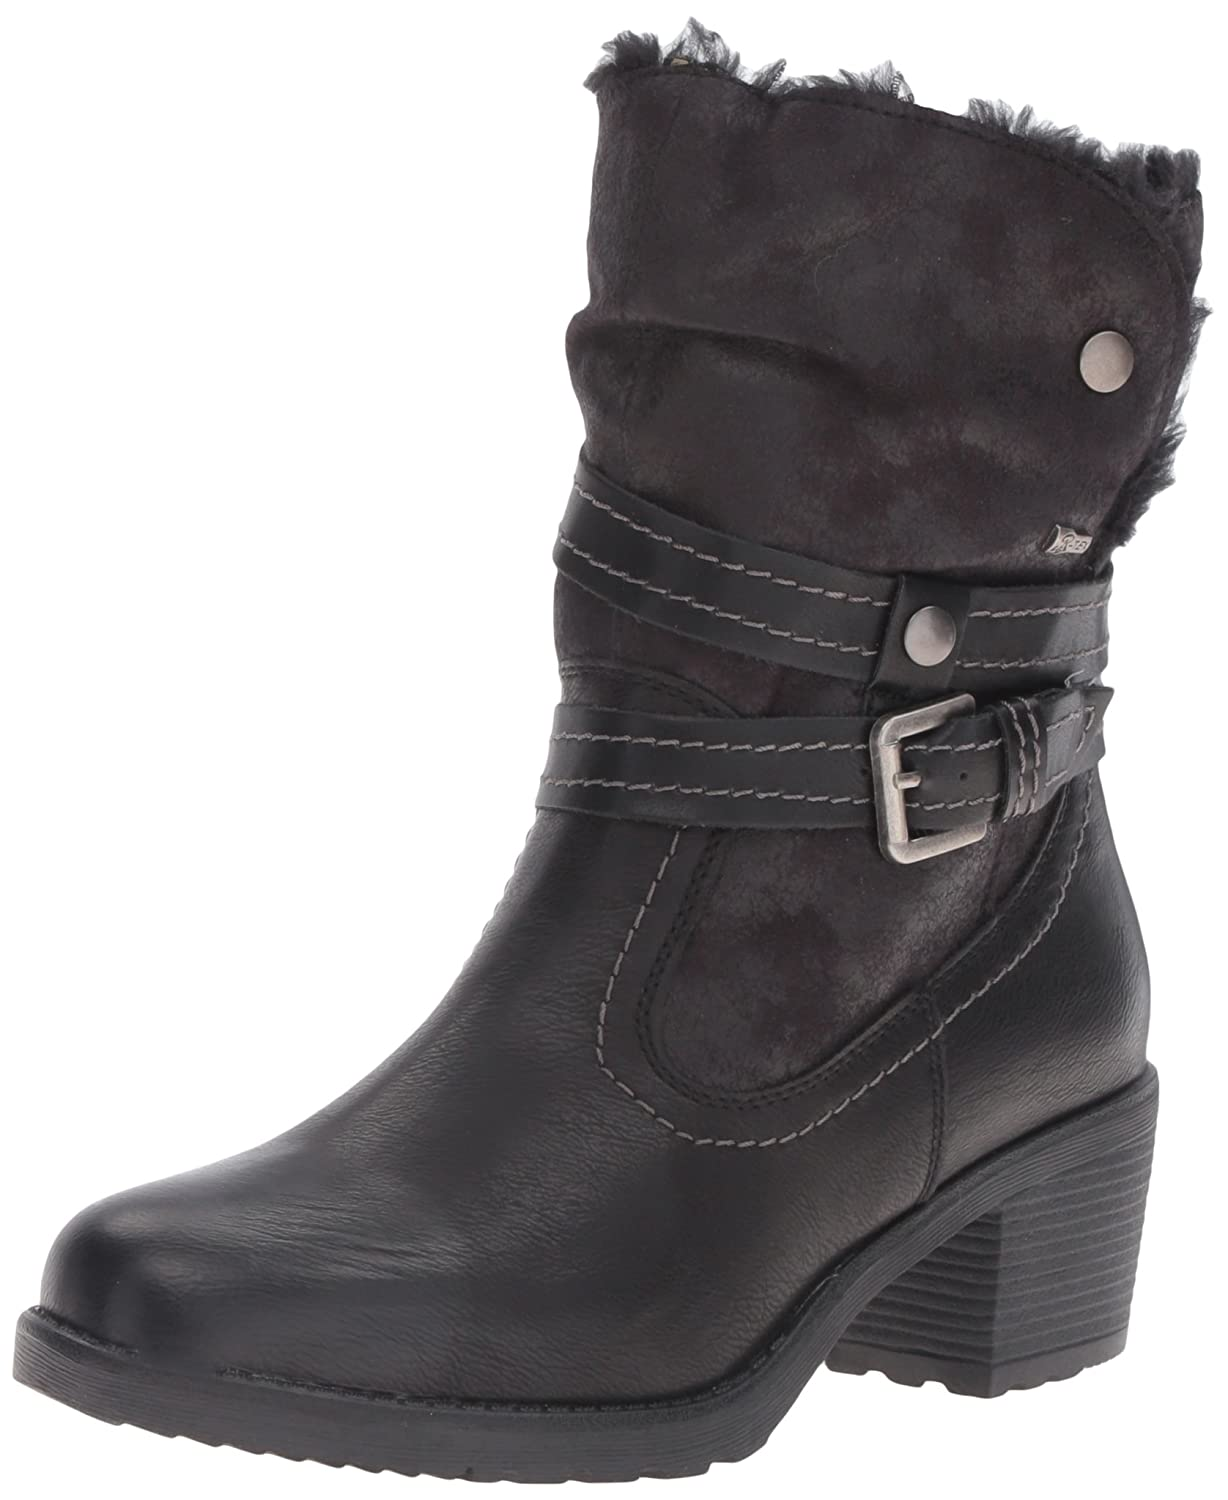 Spring Step Women's Boisa Winter Boot B01EIRFH44 36 EU/5.5-6 M US|Black